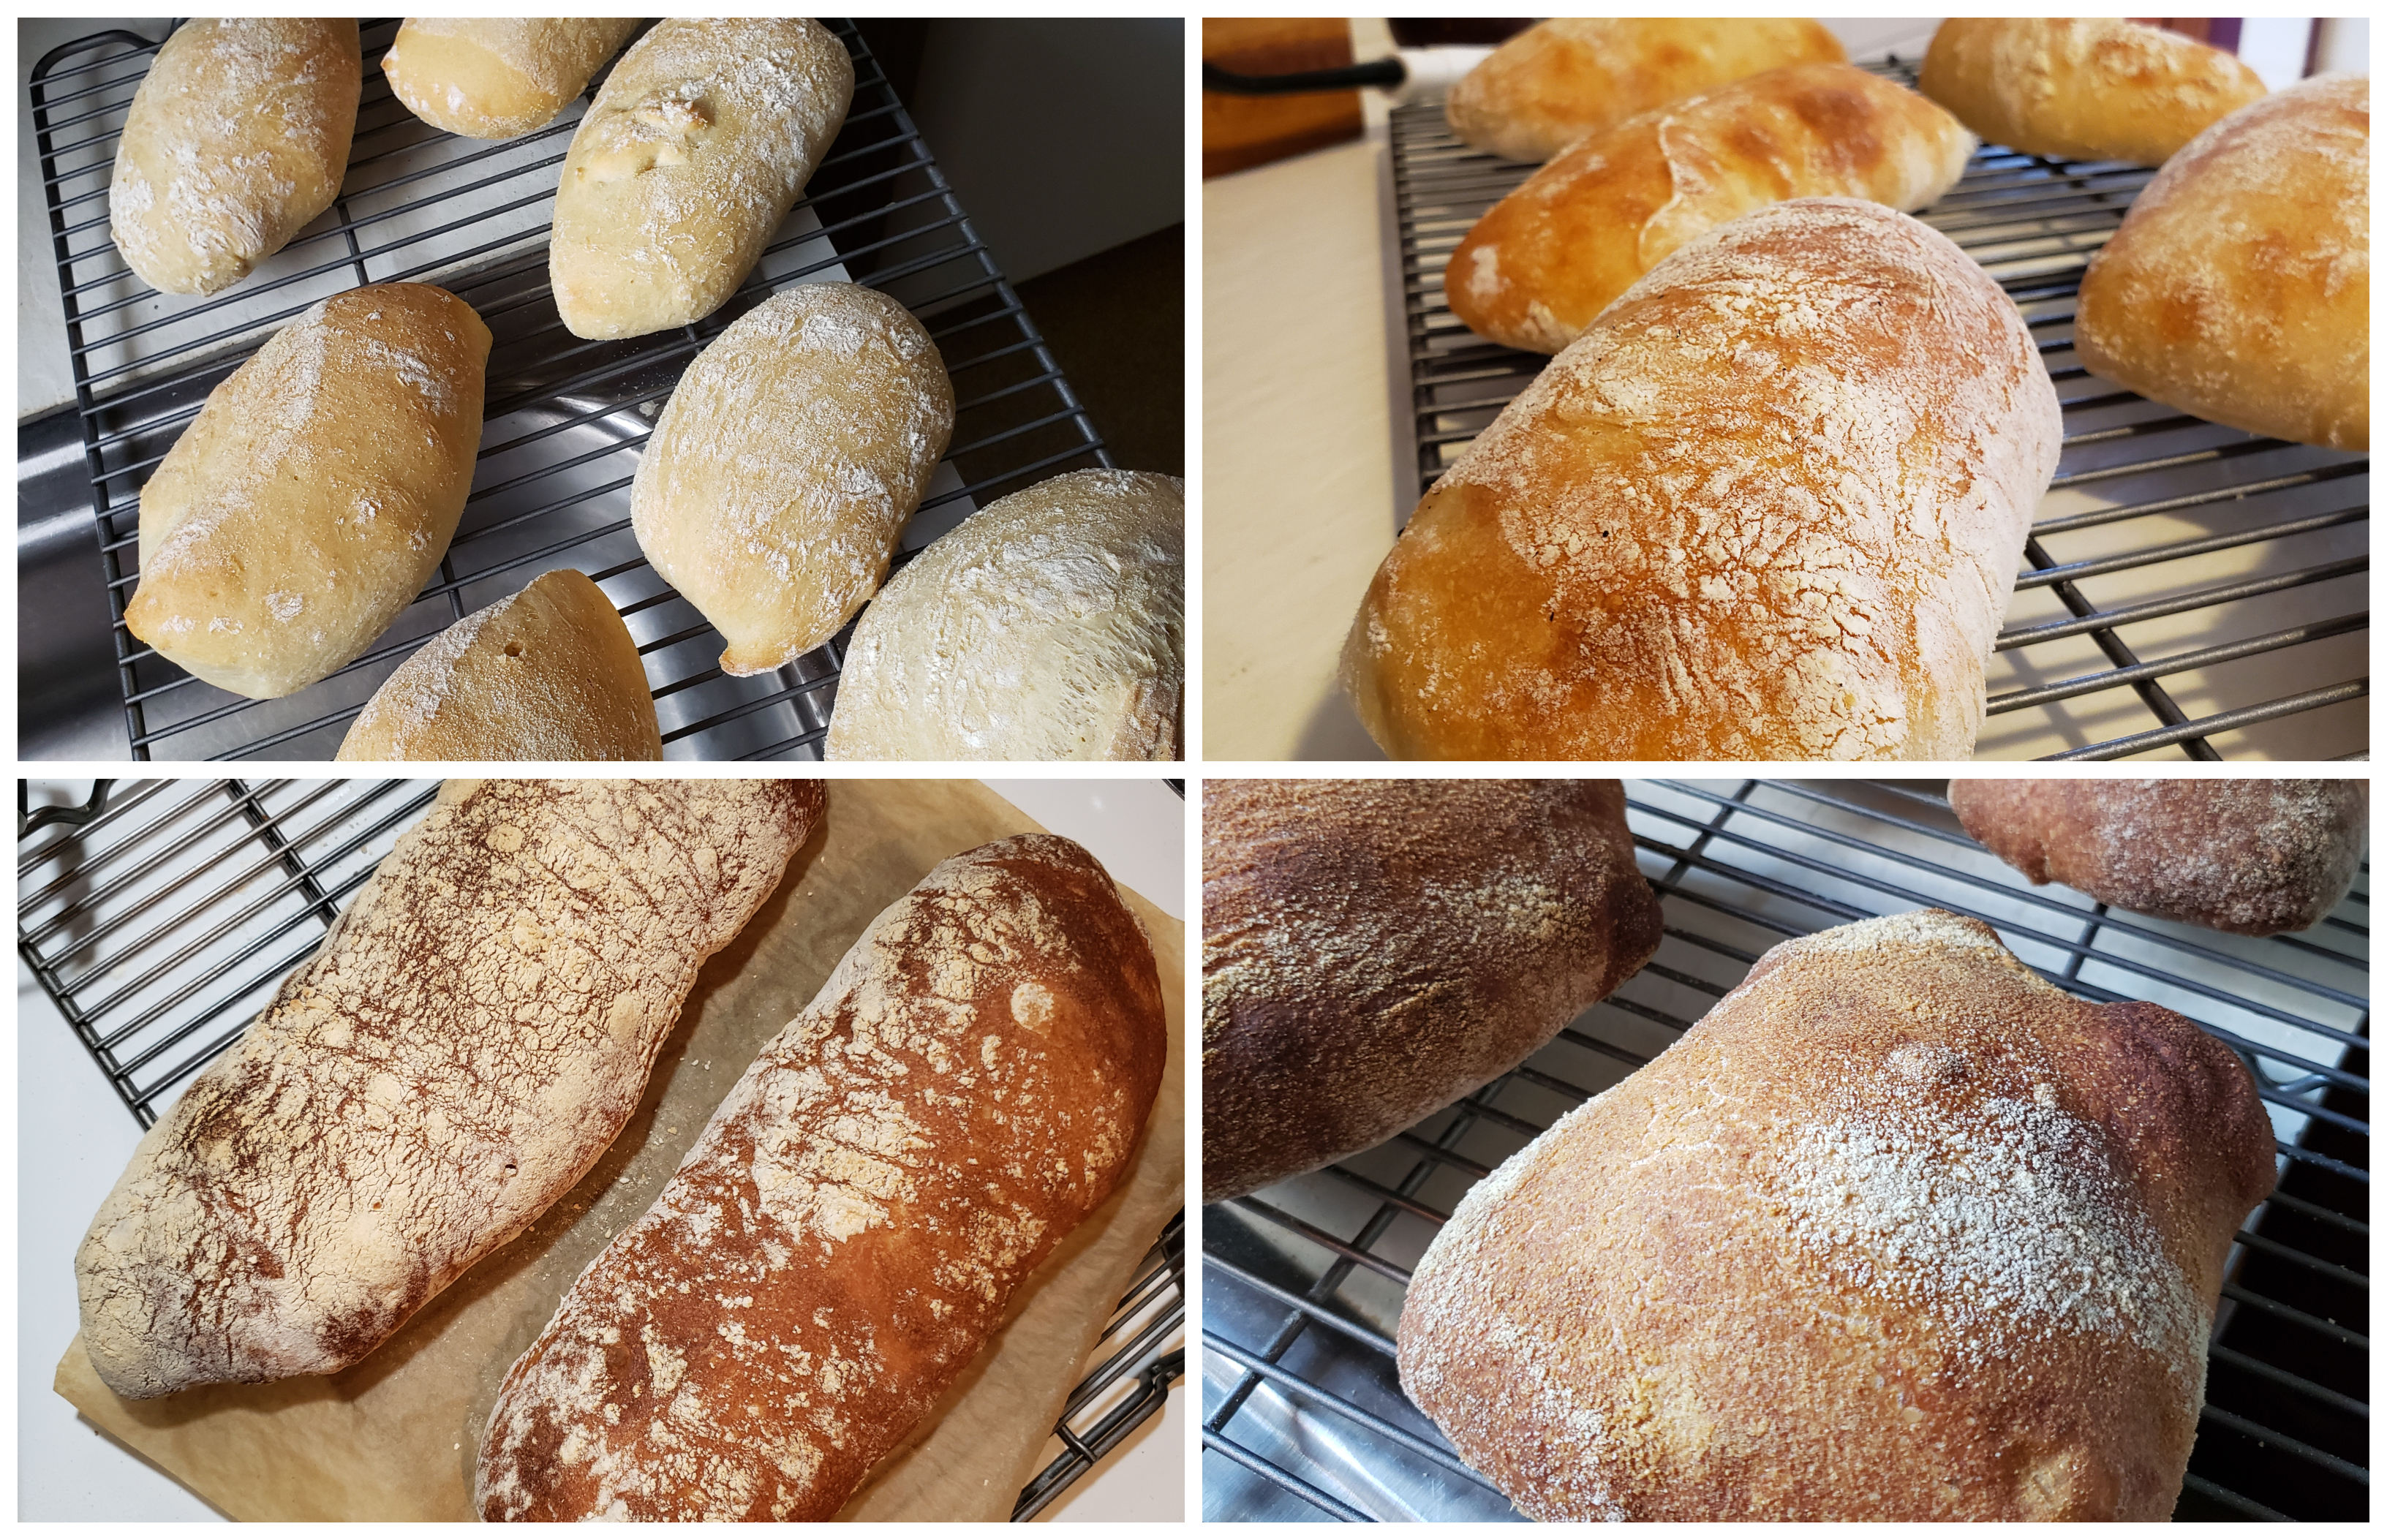 Different Ciabatta Baked Results (crusts)